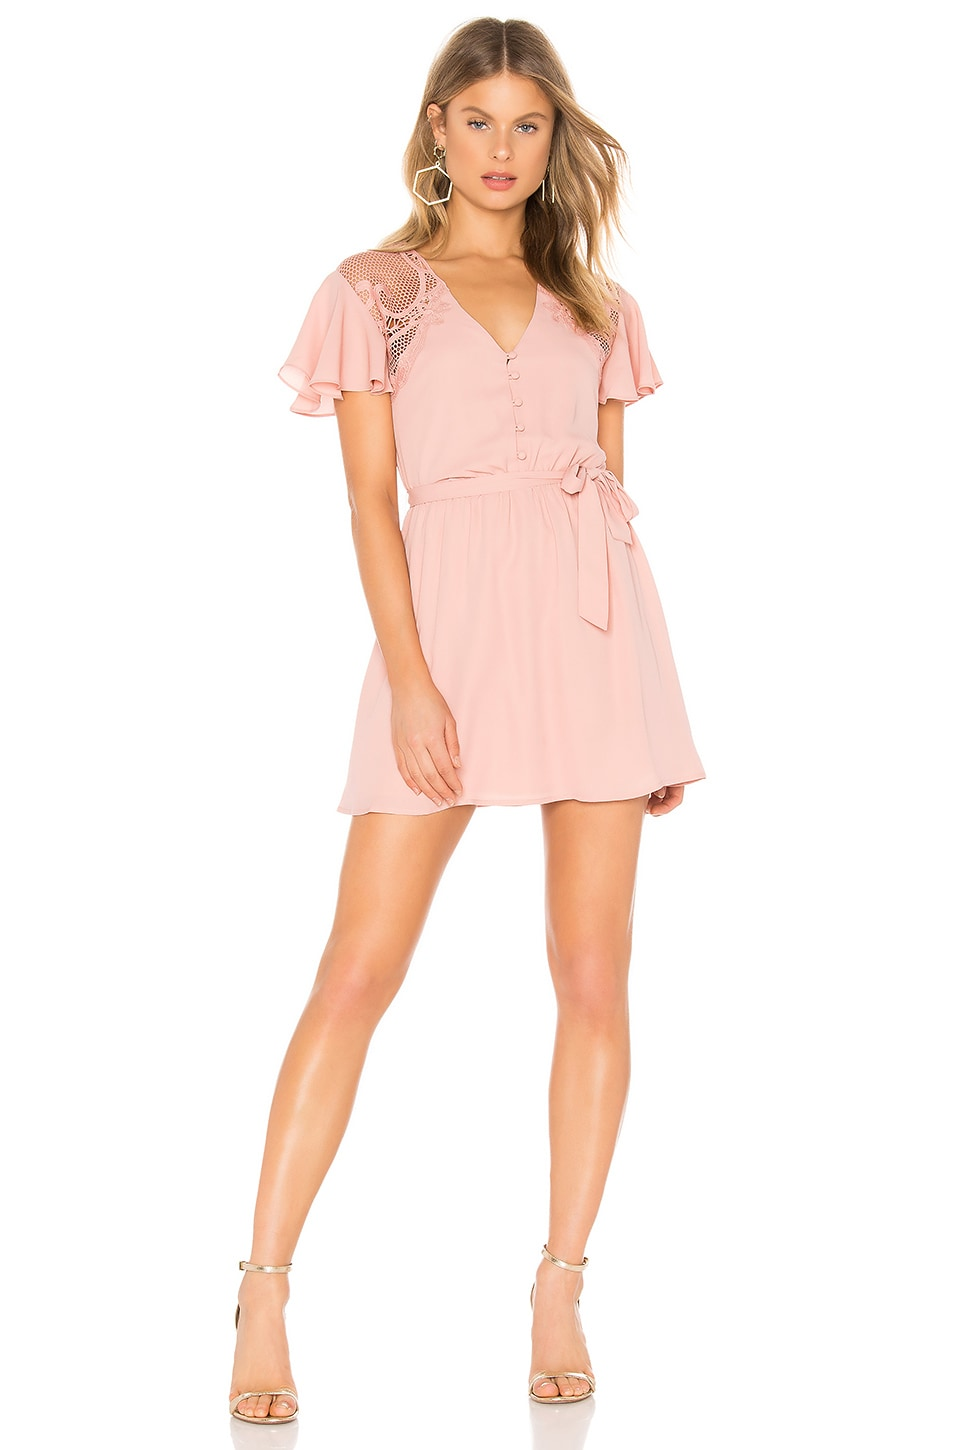 BB Dakota First Impressions Dress in Pink Lemonade